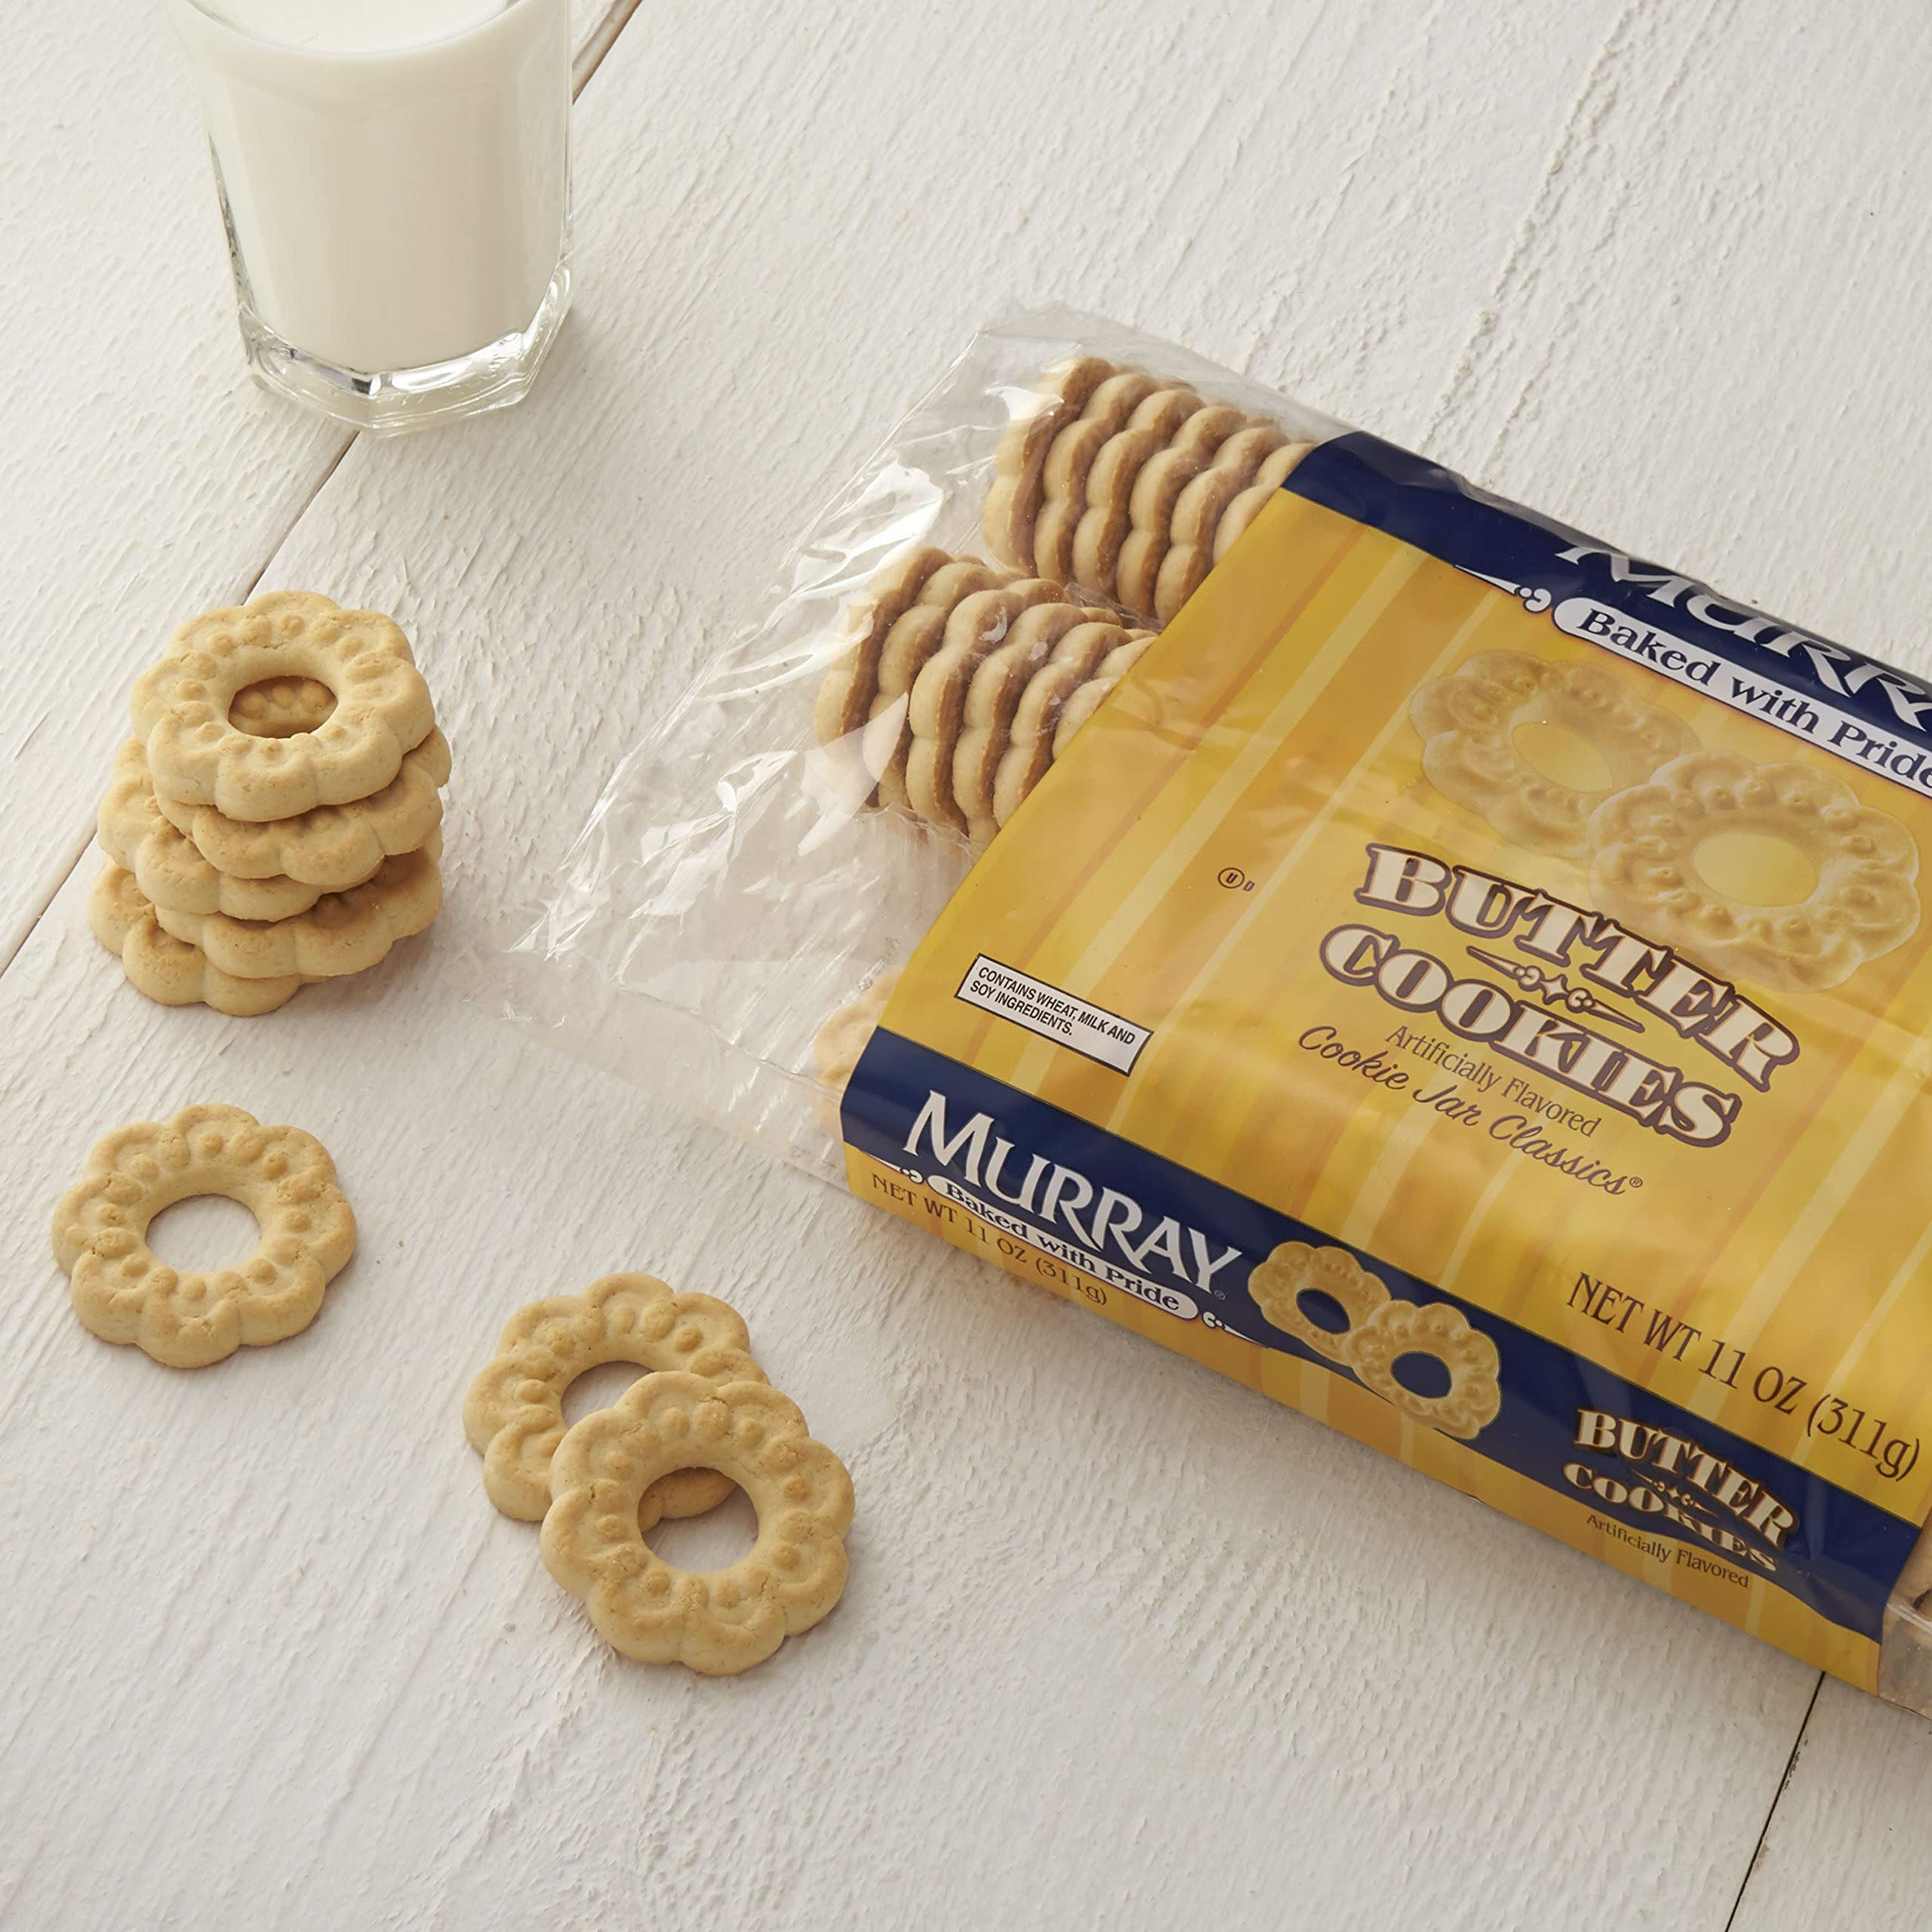 Murray Cookies, Butter, 11 oz Tray by Murray (Image #4)